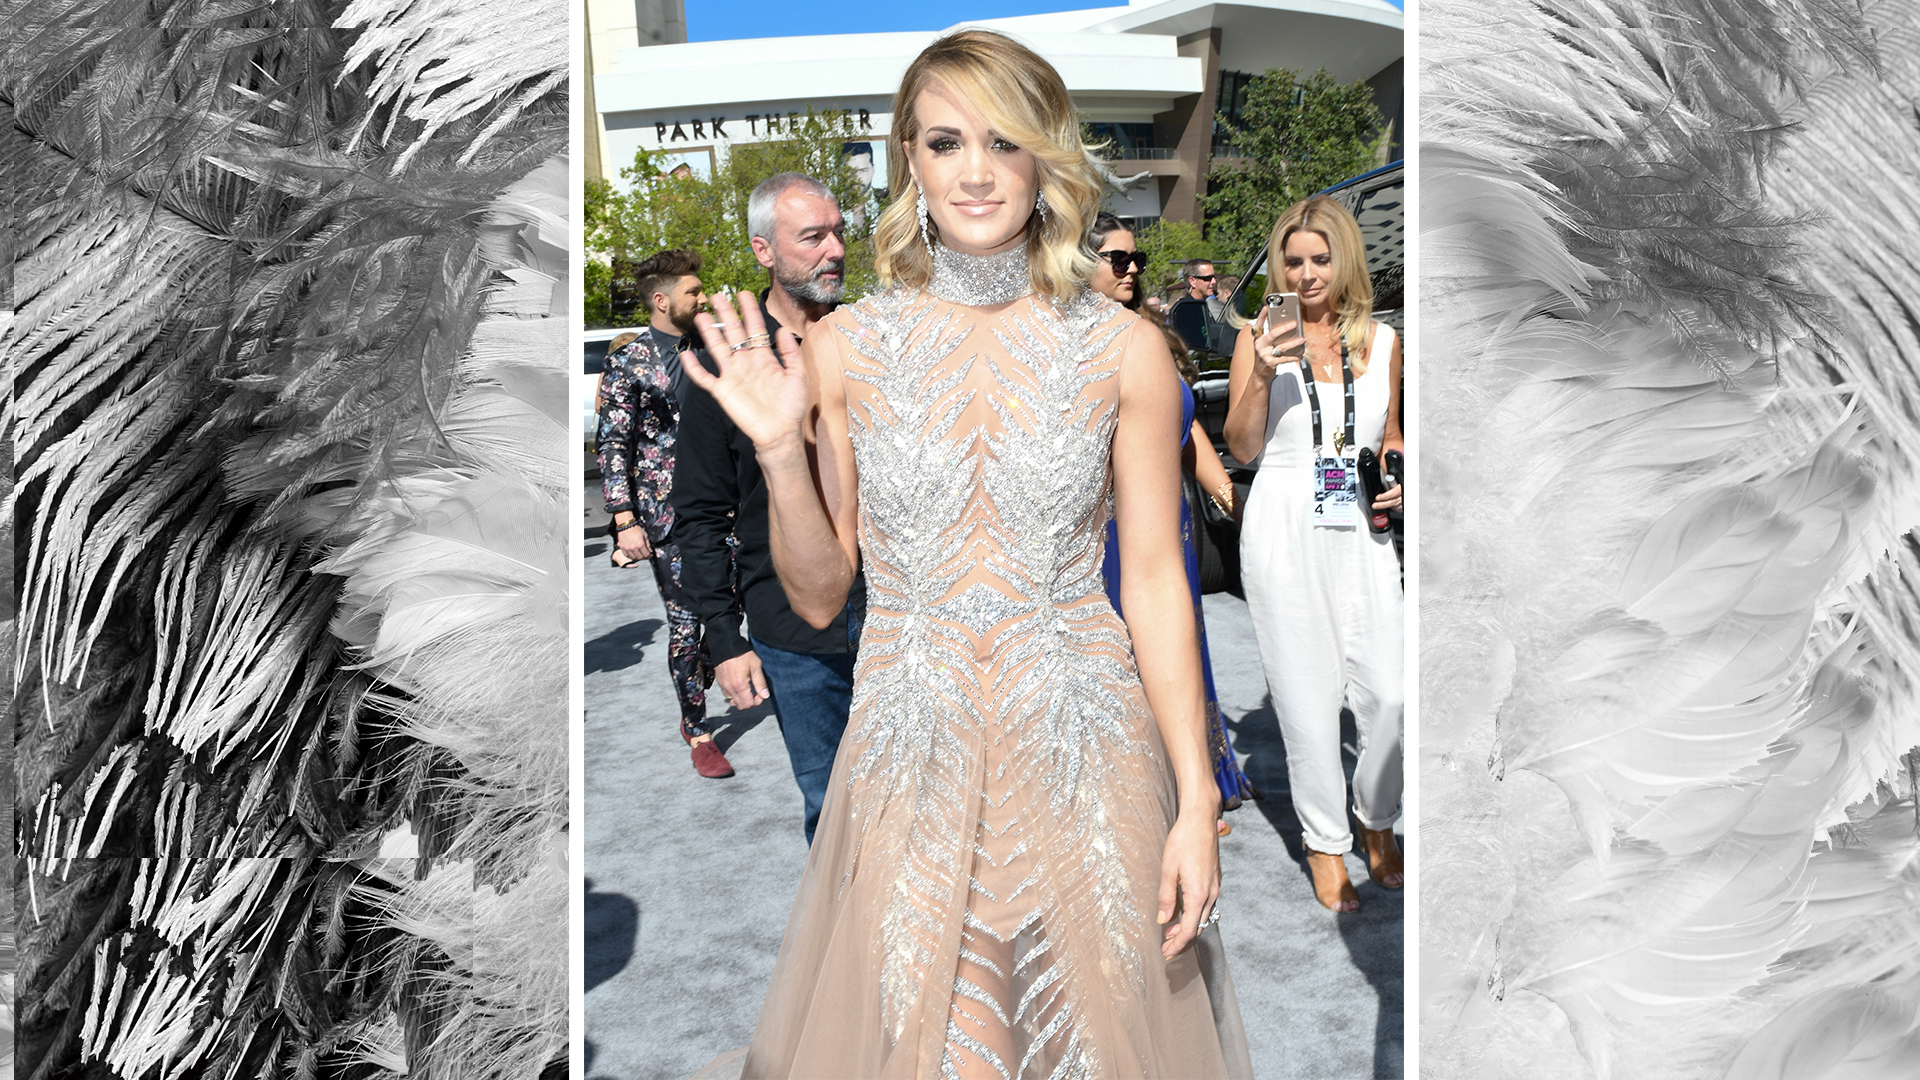 Carrie Underwood is a vision in a high-collared bedazzled gown.